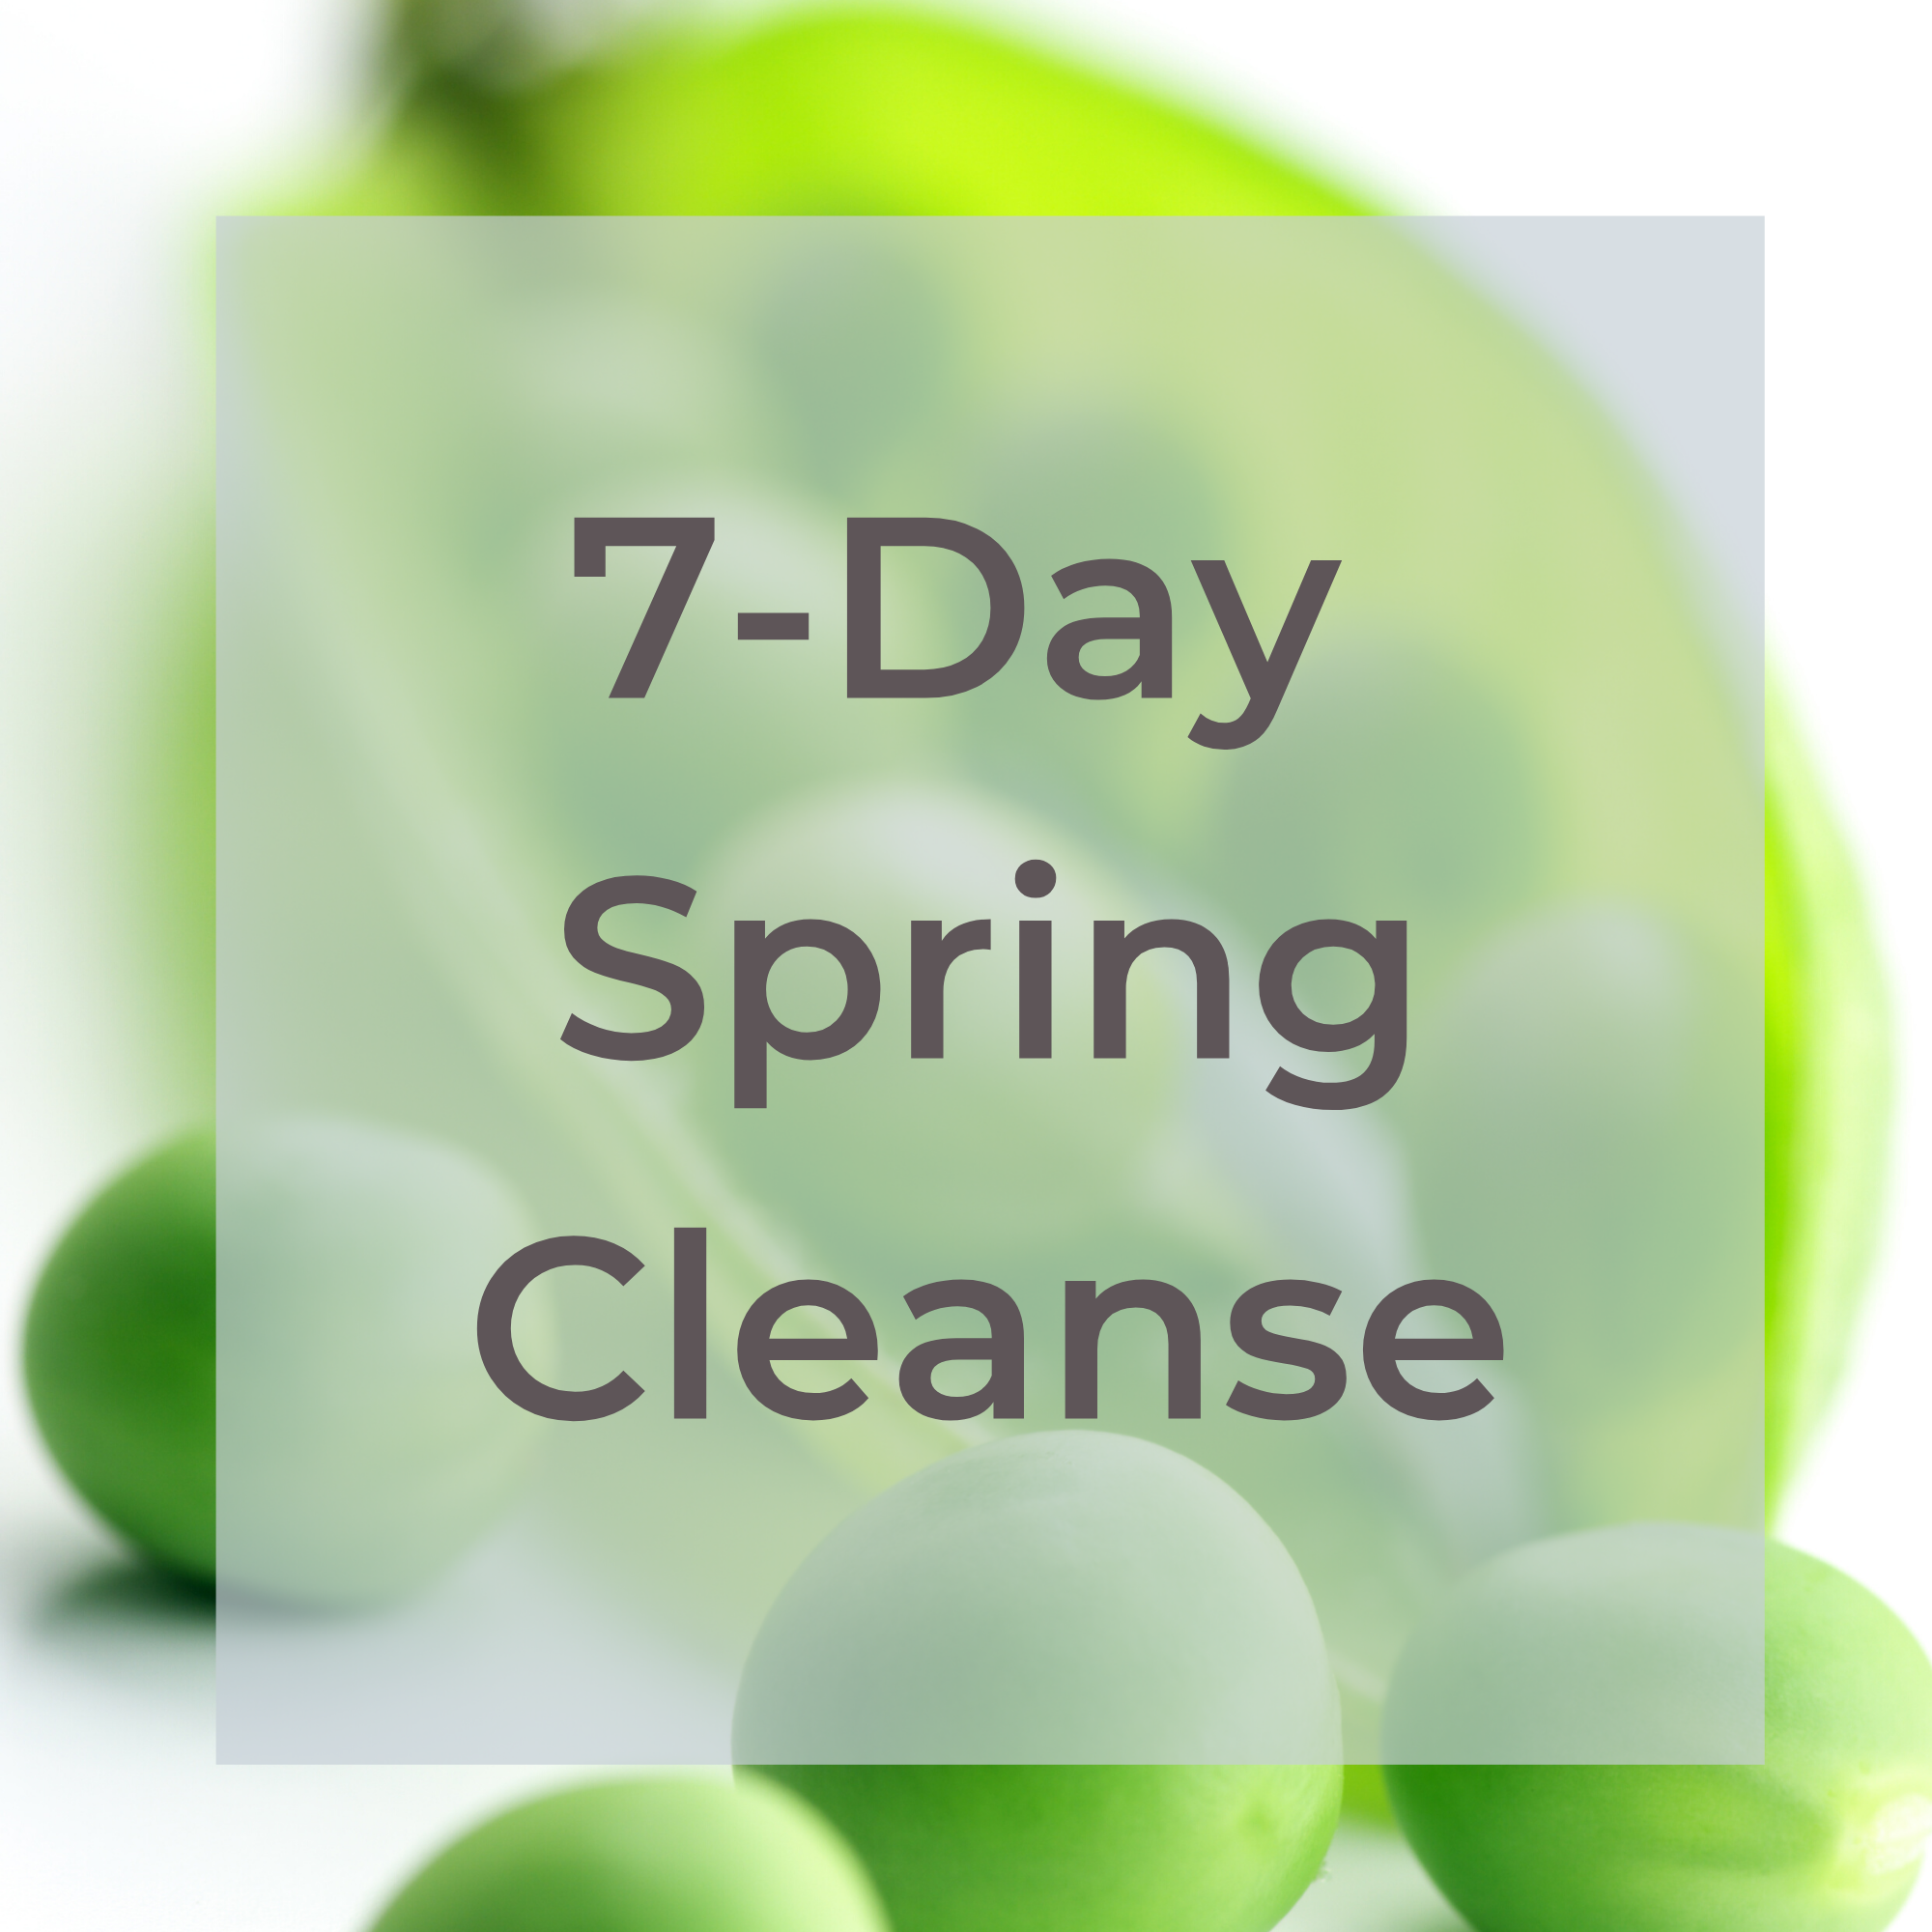 7- Day Spring Cleanse